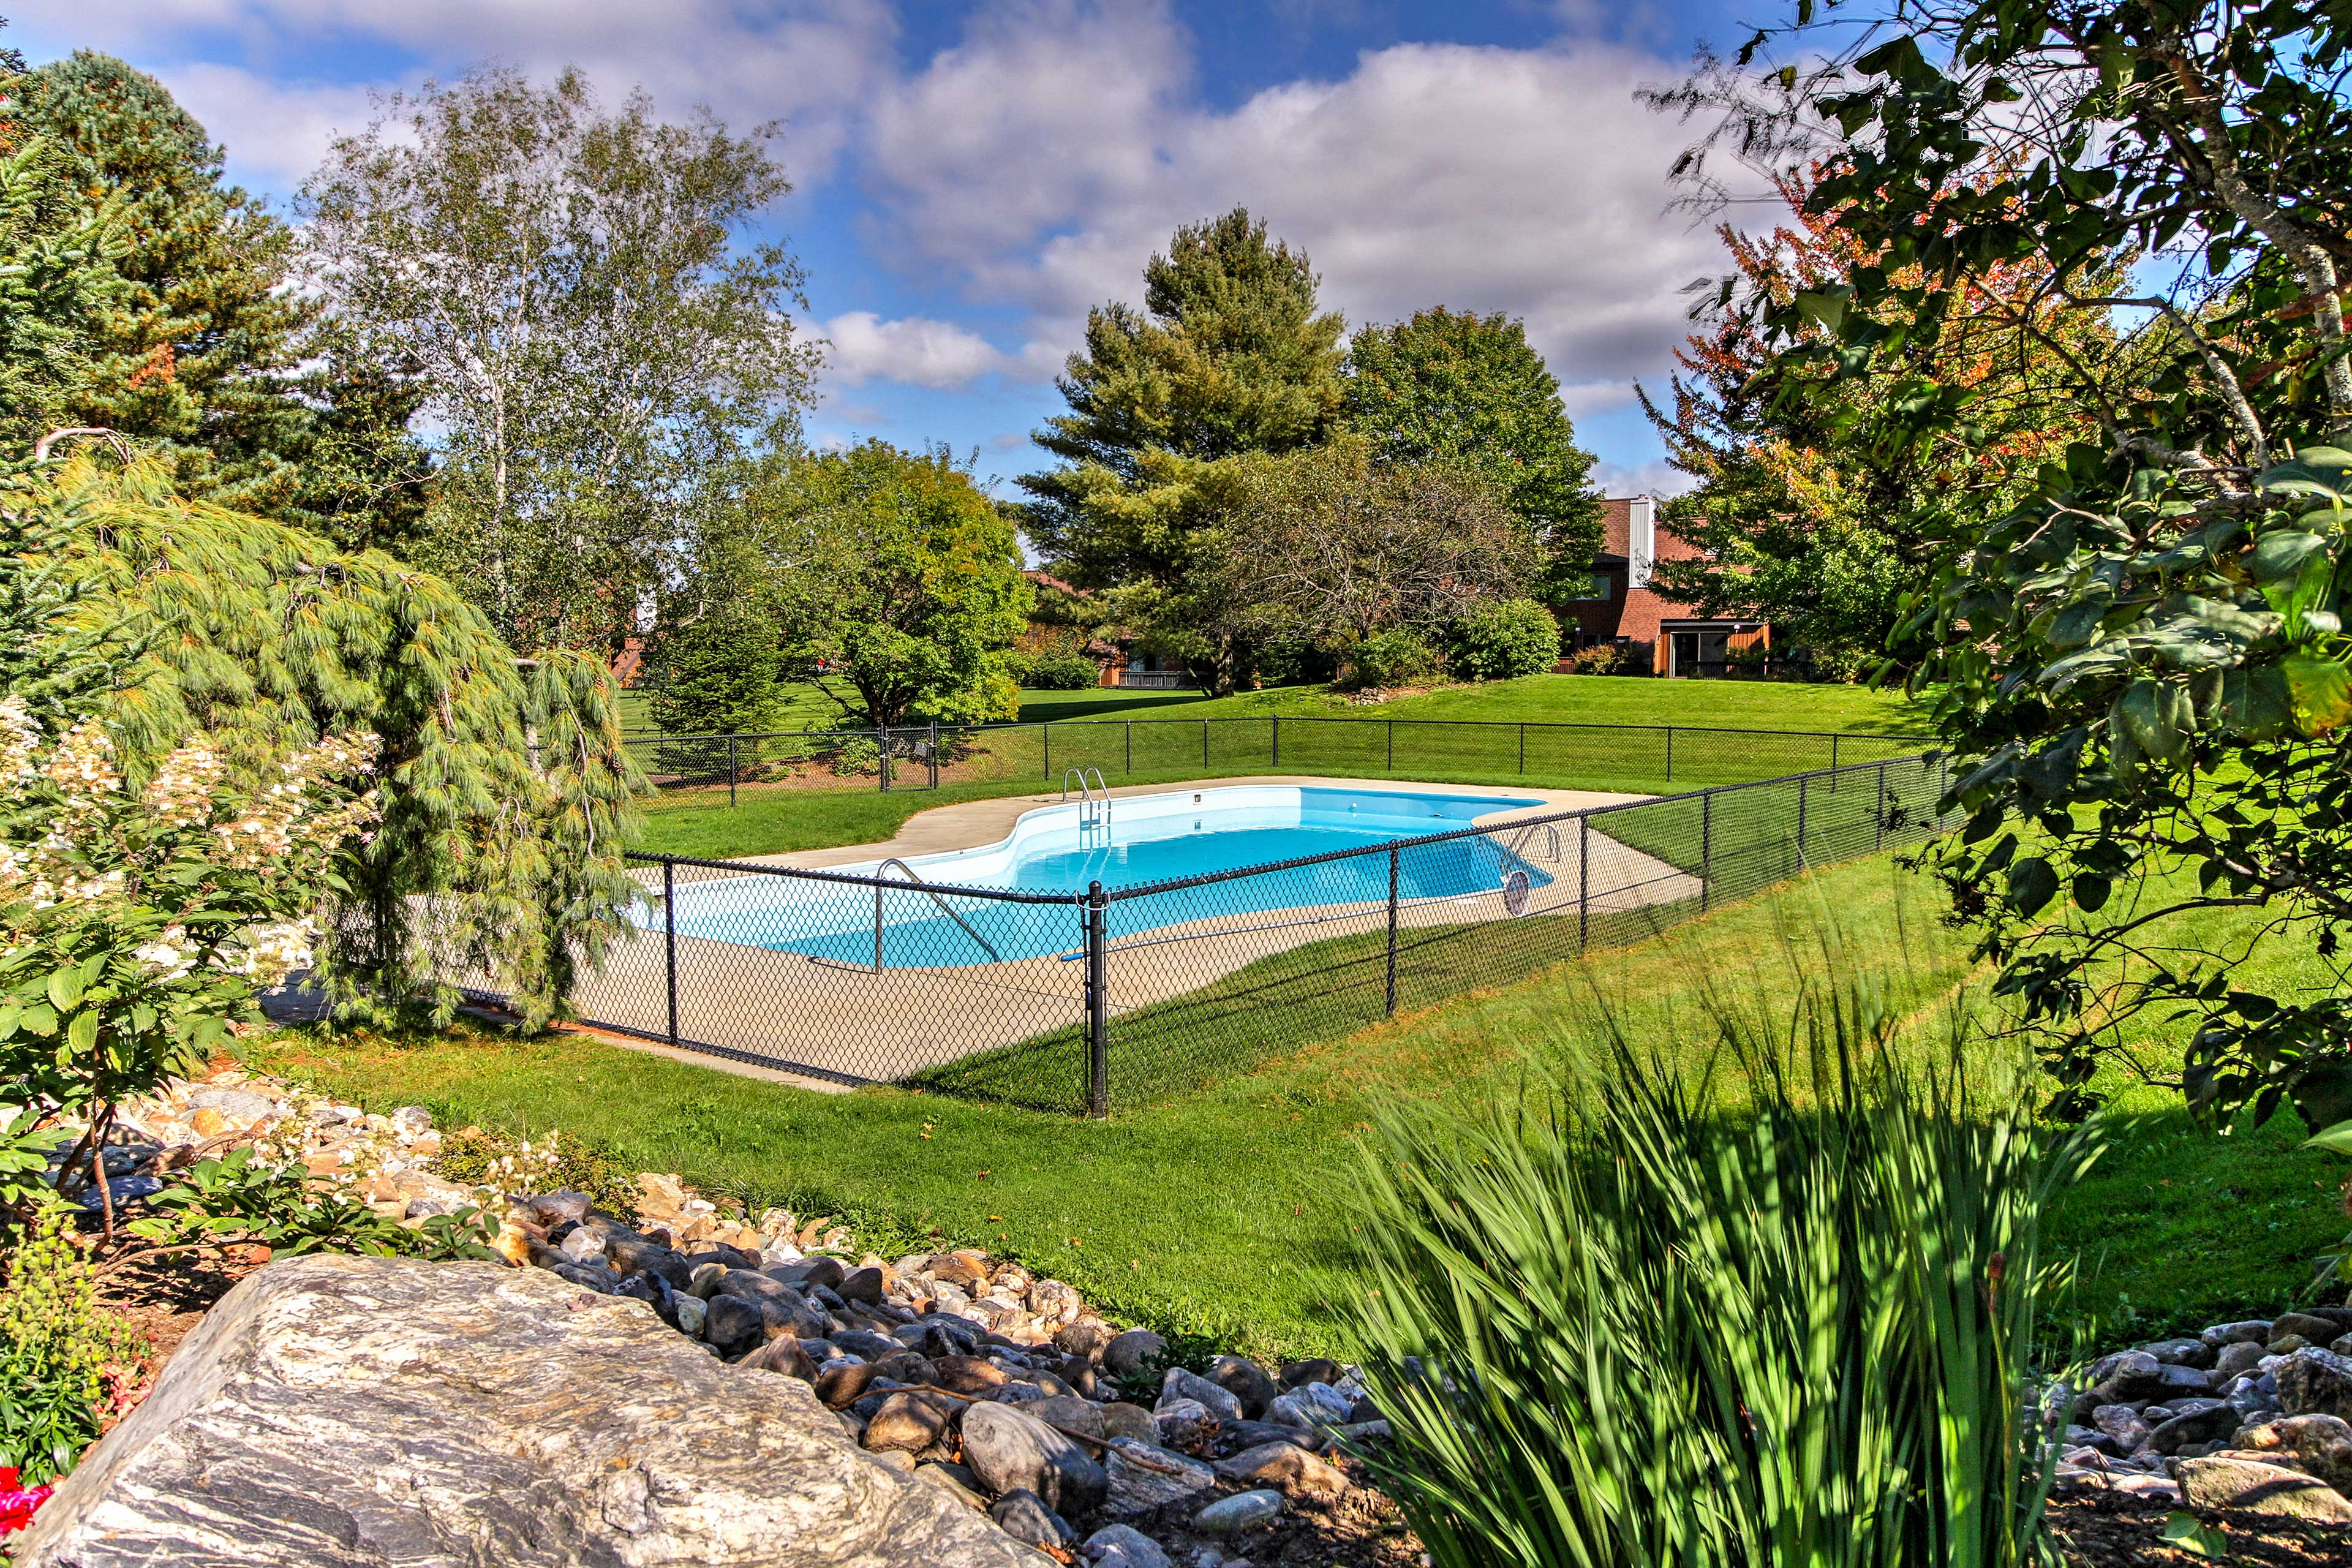 Boasting resort amenities, this home offers everything's you'll need.